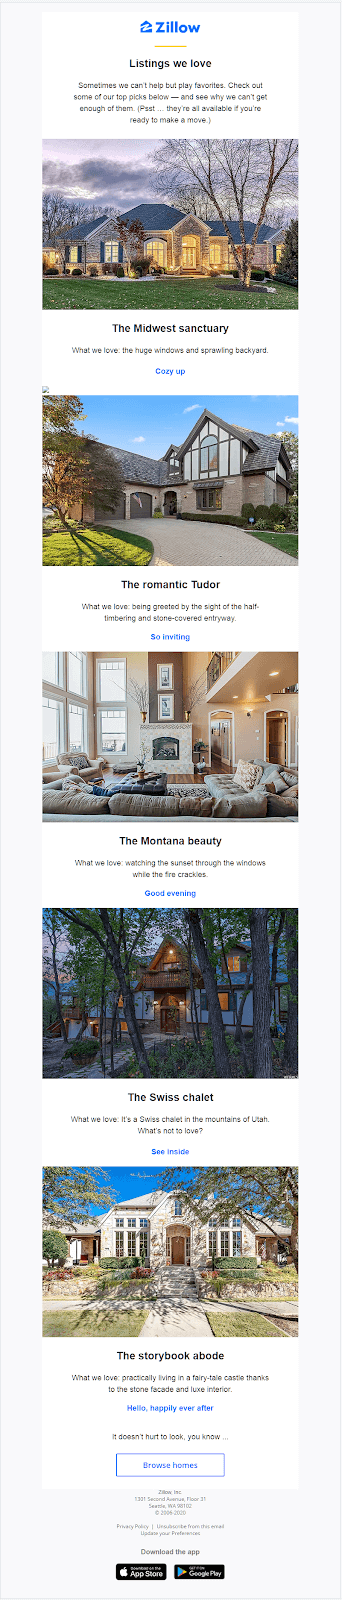 Zillow newsletter